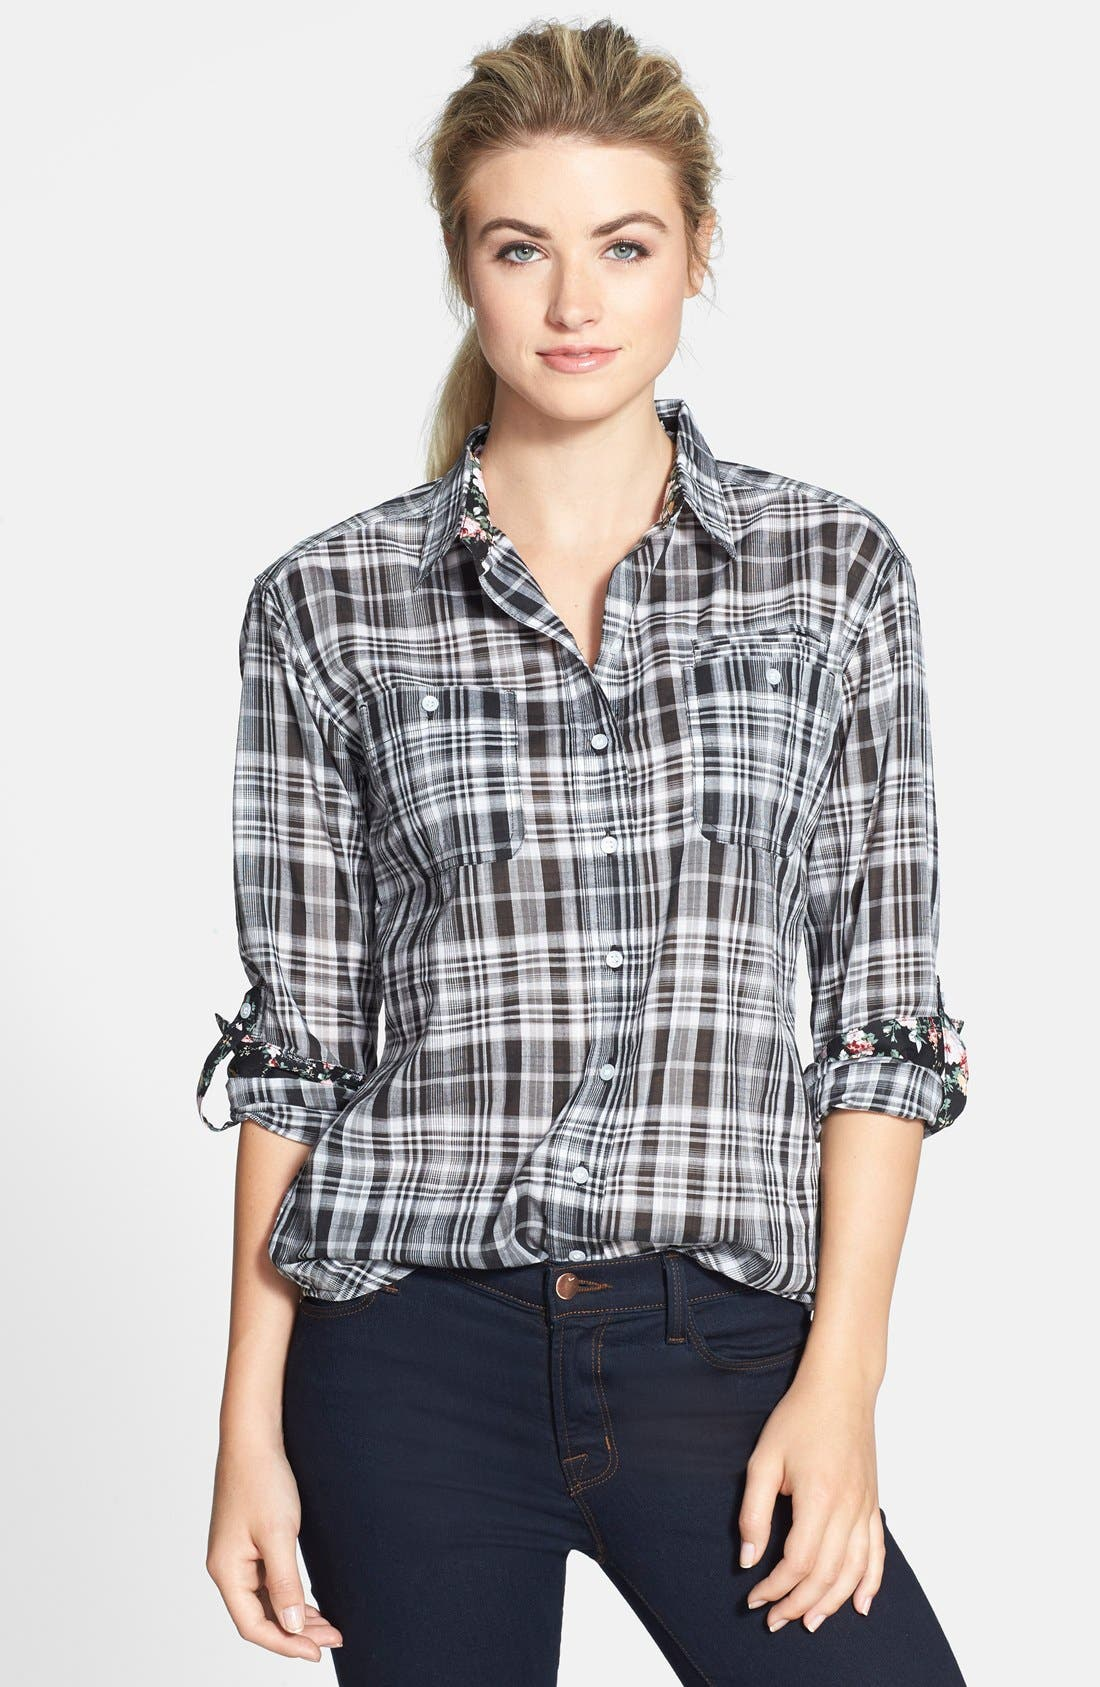 Alternate Image 1 Selected - Sandra Ingrish Plaid Boyfriend Shirt (Regular & Petite)